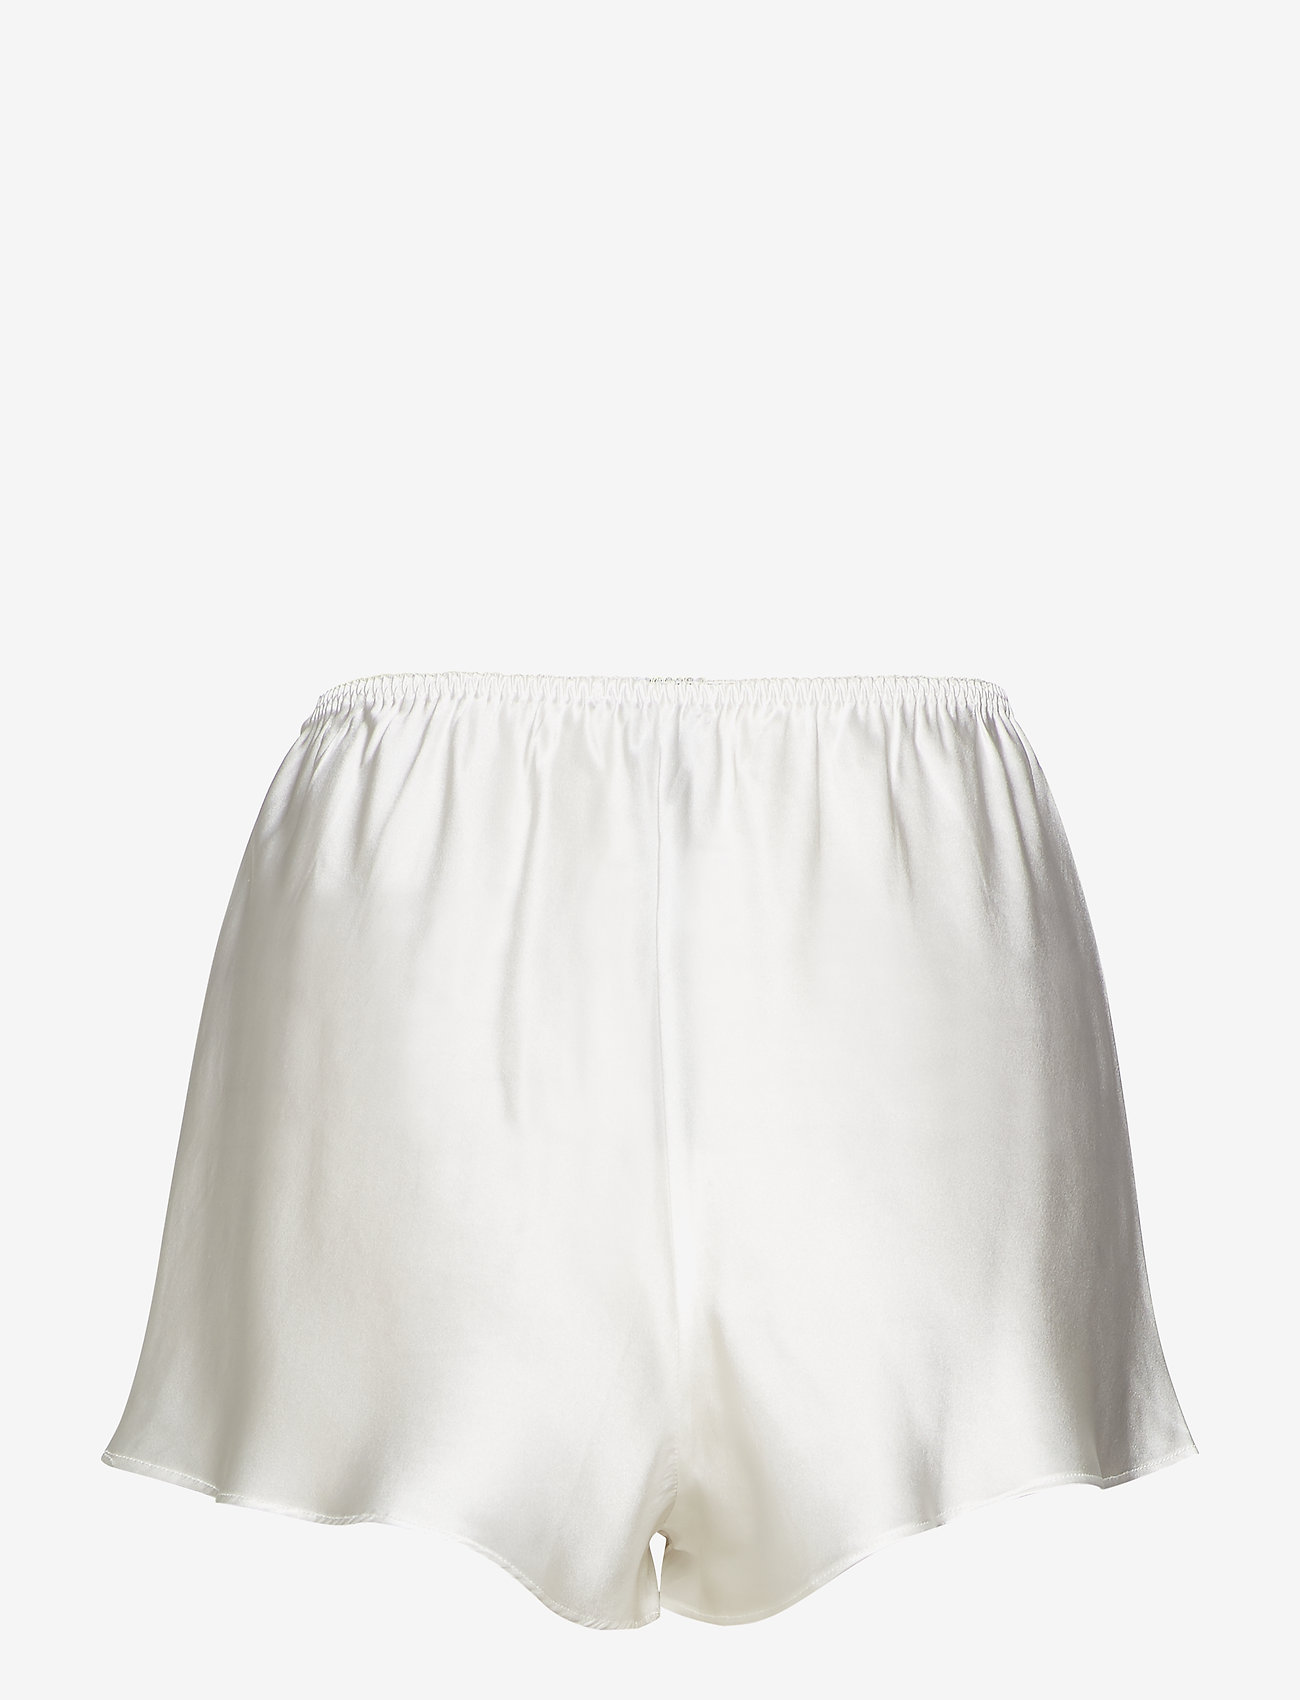 Lady Avenue - Pure Silk - French knickers - szorty - off-white - 1